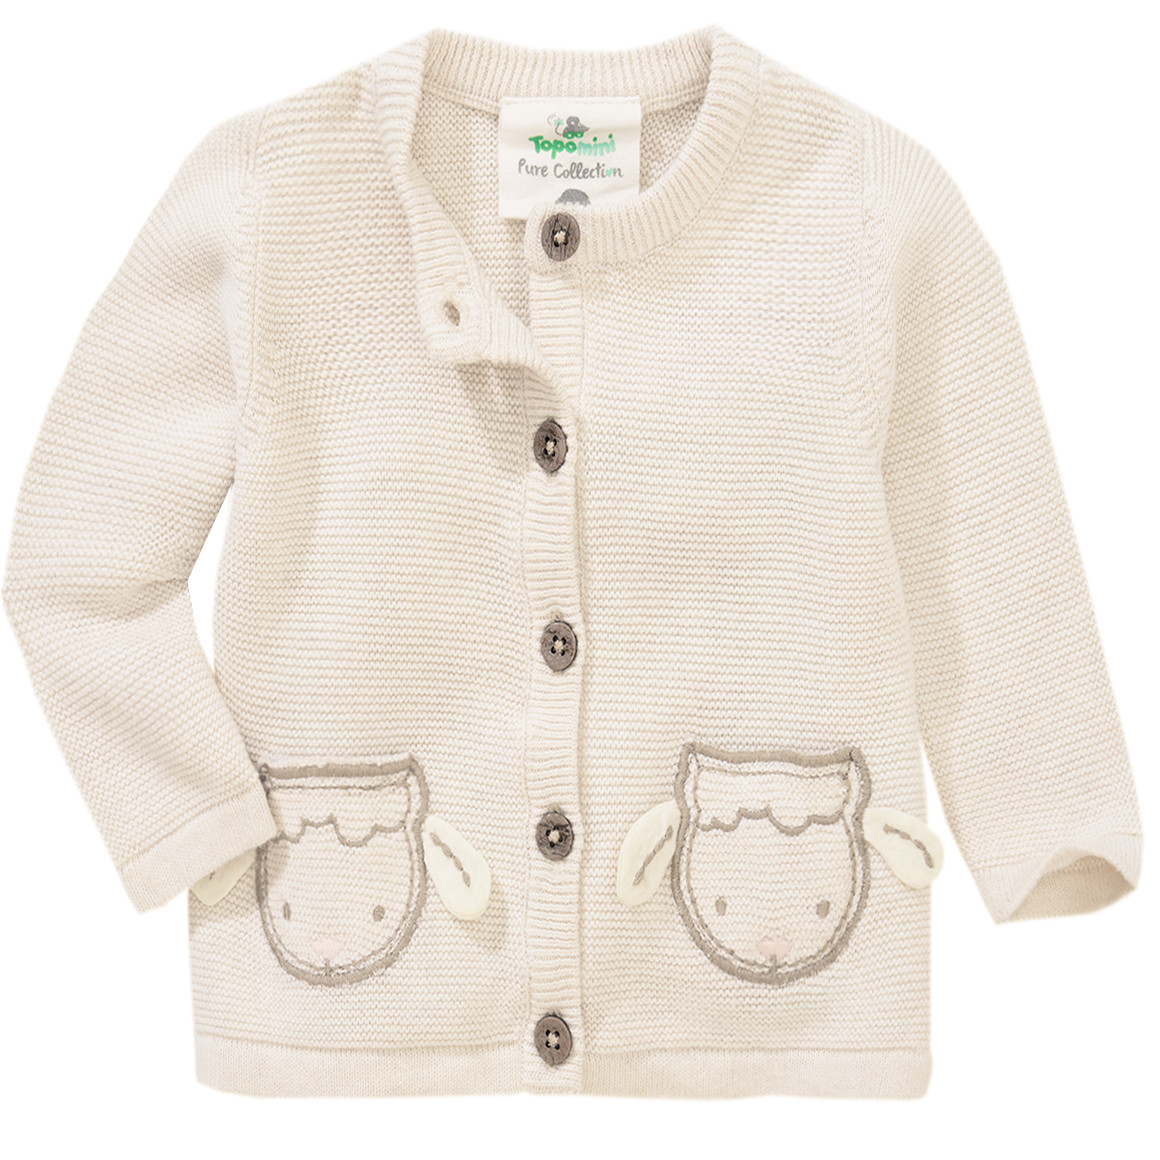 Newborn Strickjacke mit Schaf Applikation